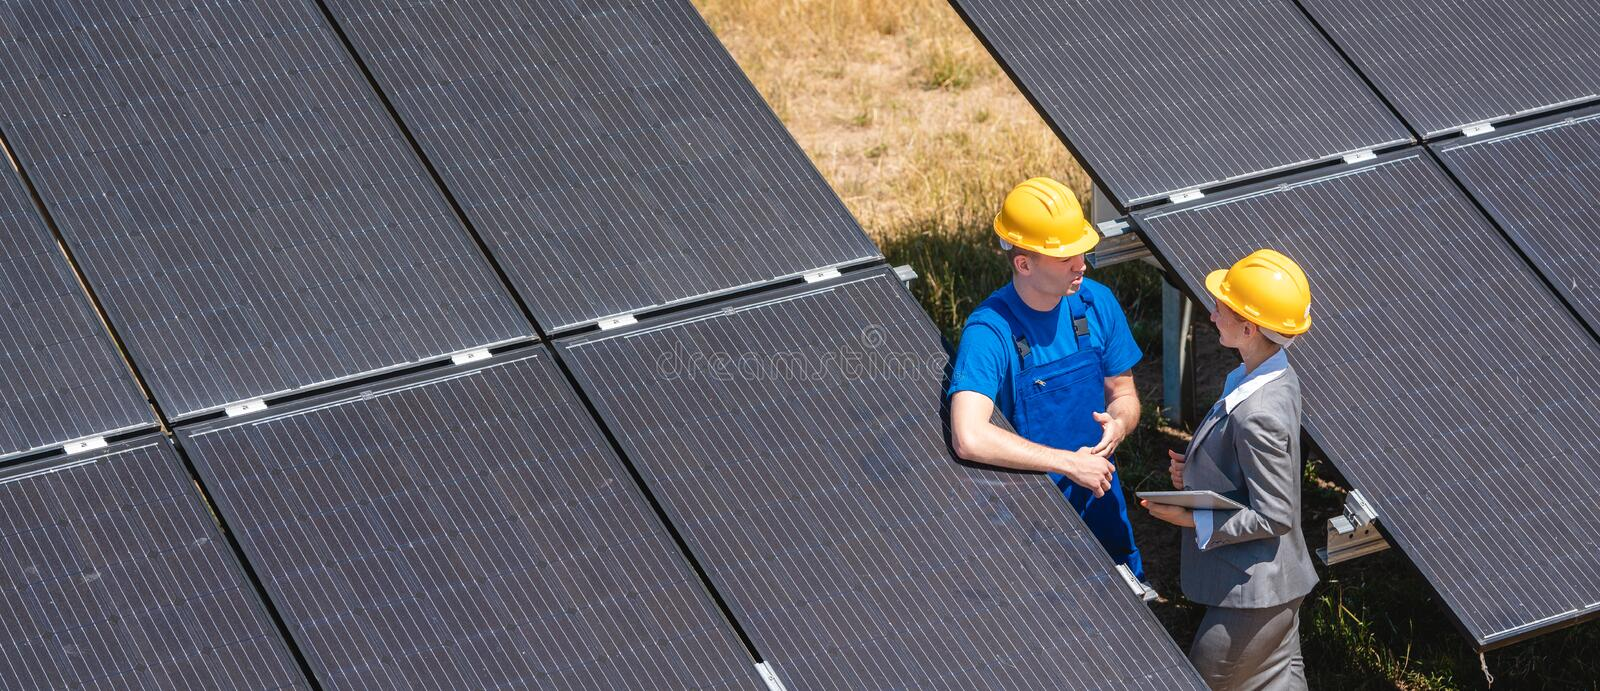 Two people standing amid solar cells in a power plant royalty free stock photography